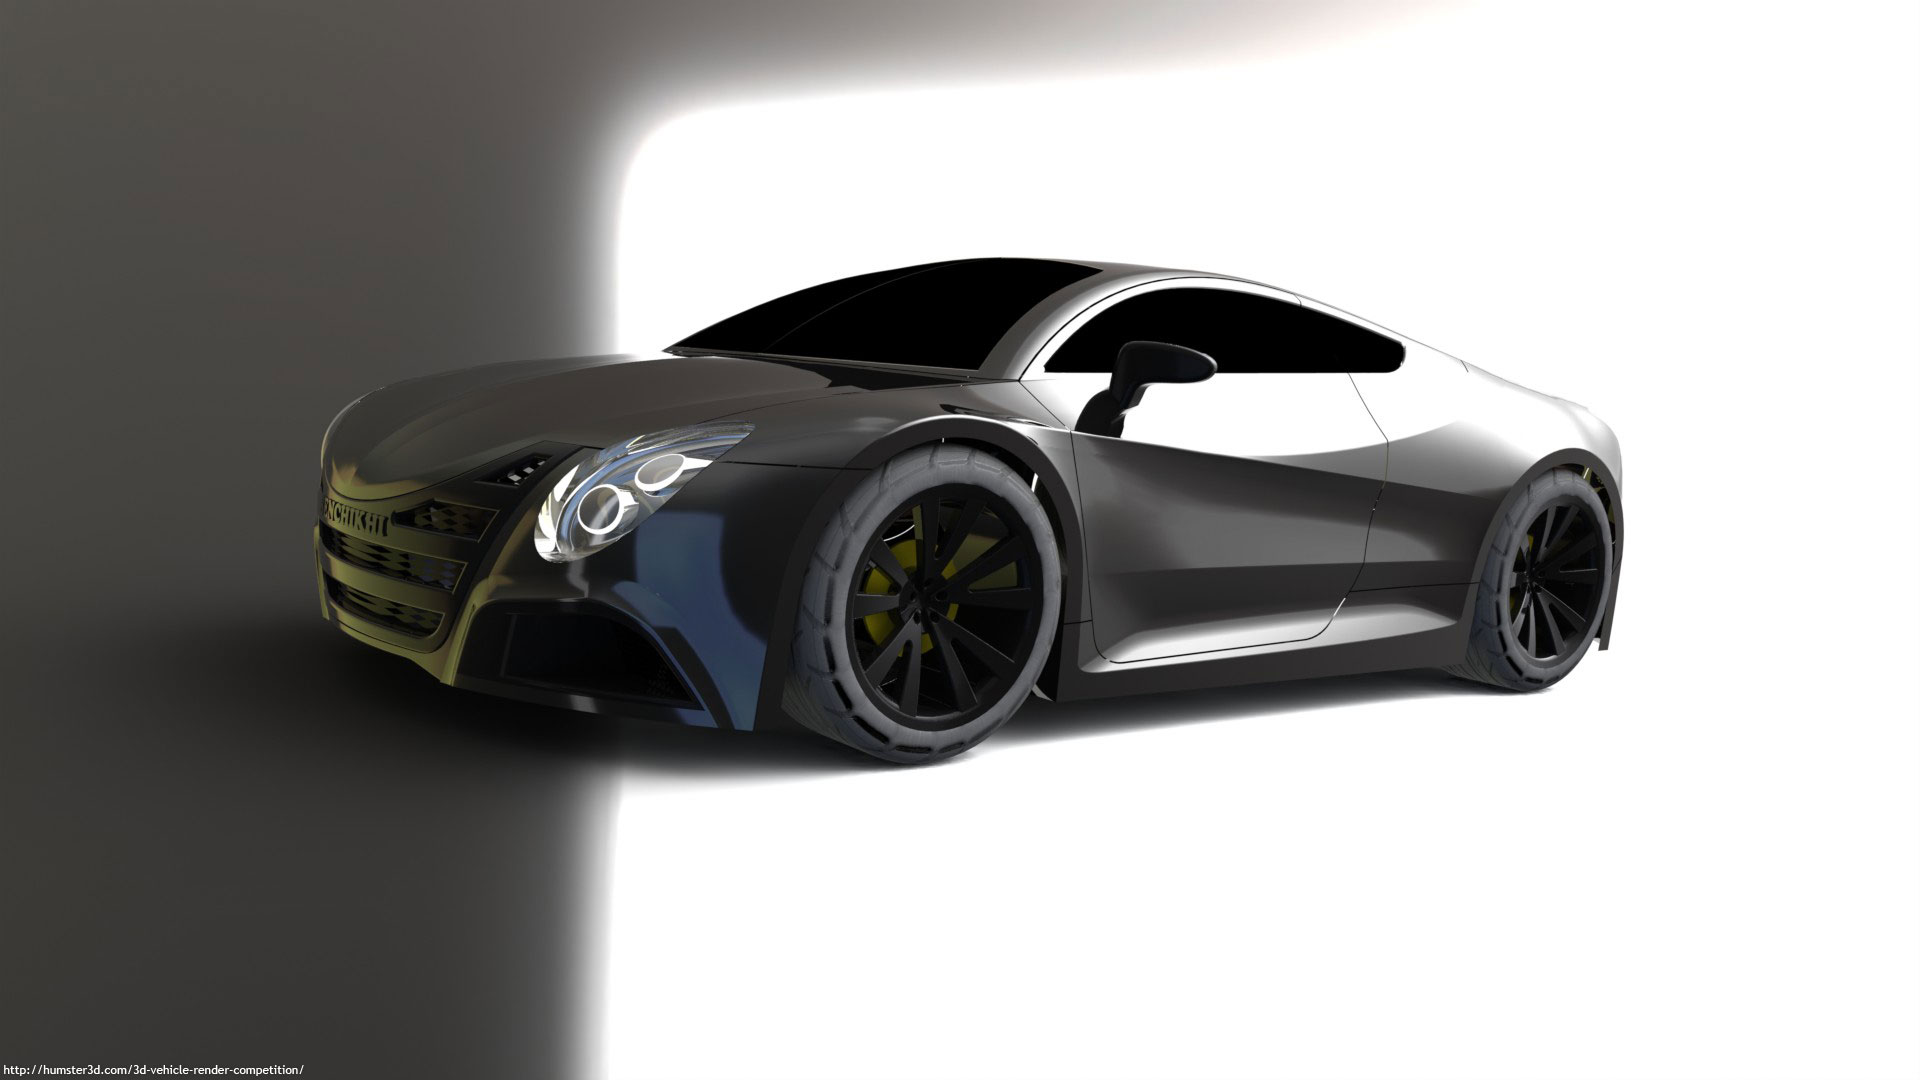 Casablanca concept car 3d art